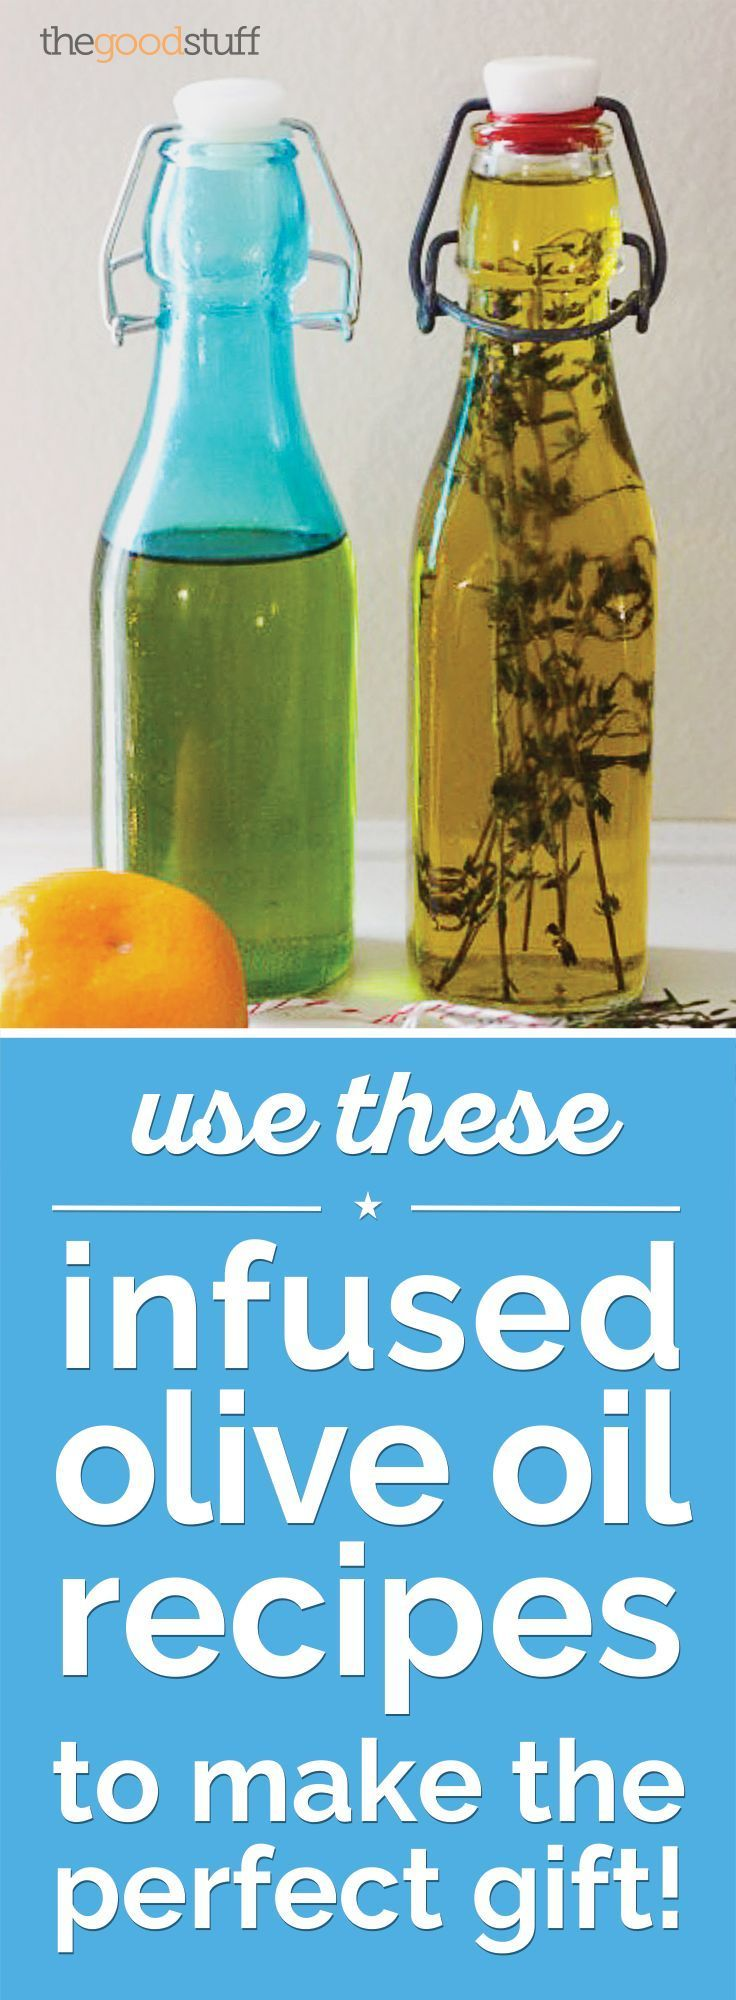 Use These Infused Olive Oil Recipes to Make the Perfect Gift!